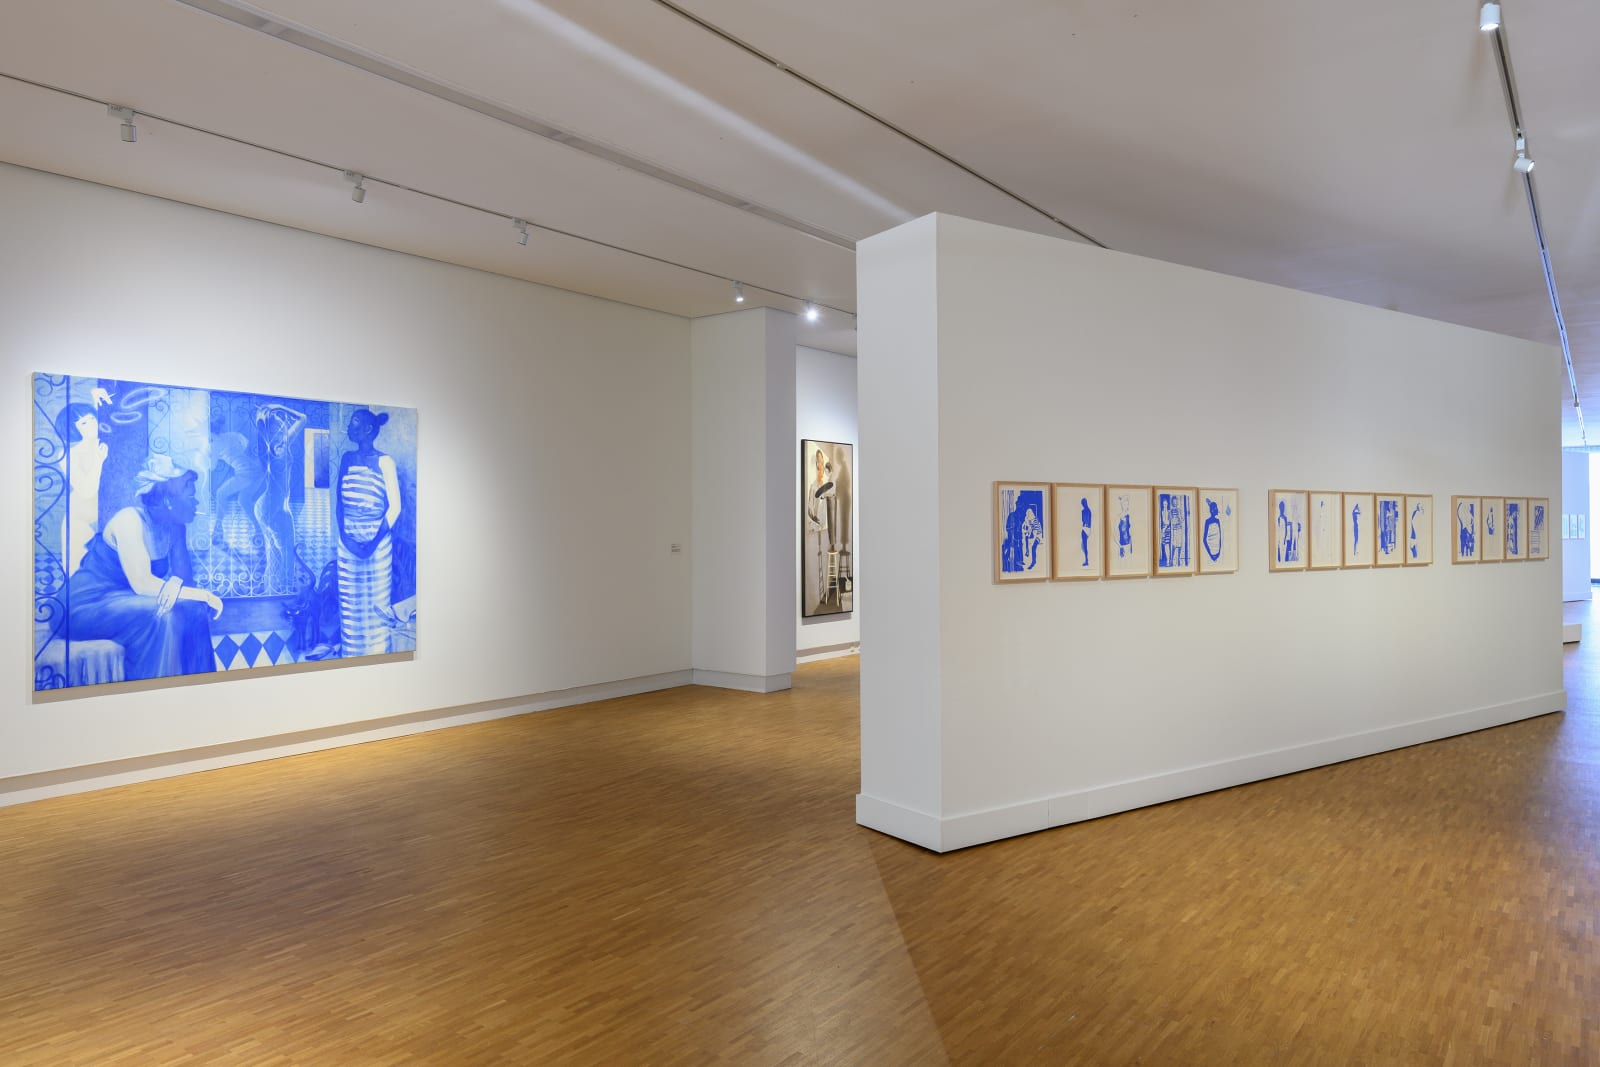 <p>Installation view: 'Smoke and Mirrors', KM21, The Hague (2020-2021).</p>